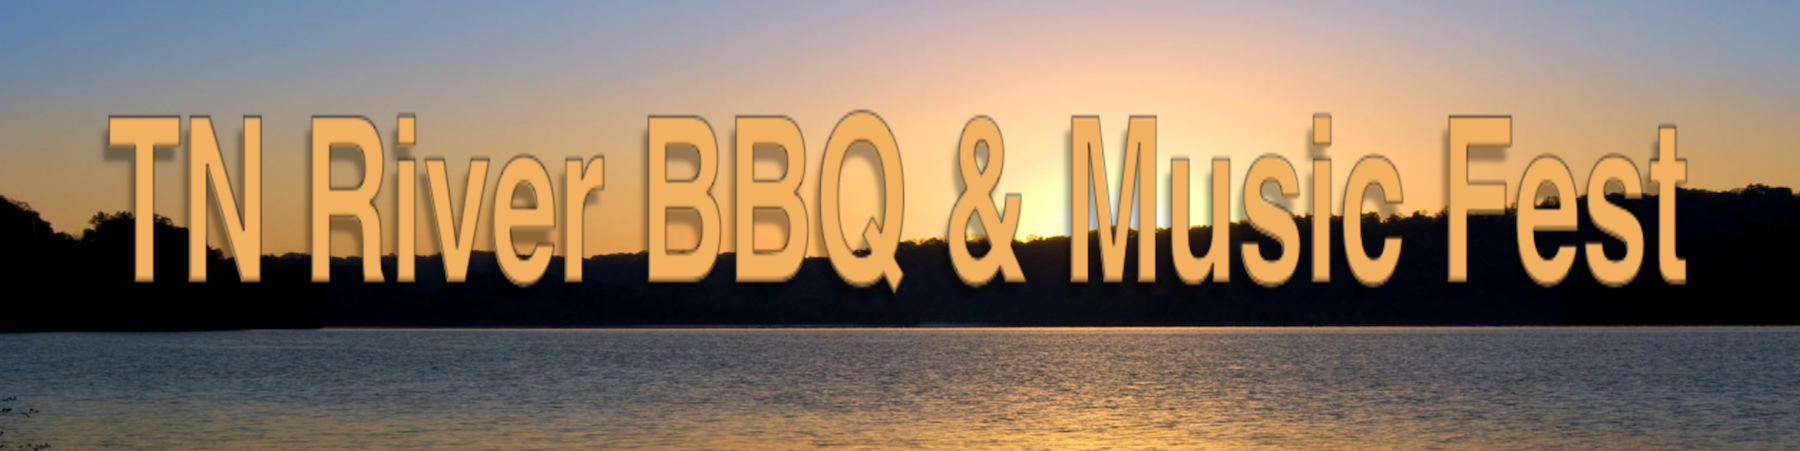 TN River BBQ Battle & Music Festival